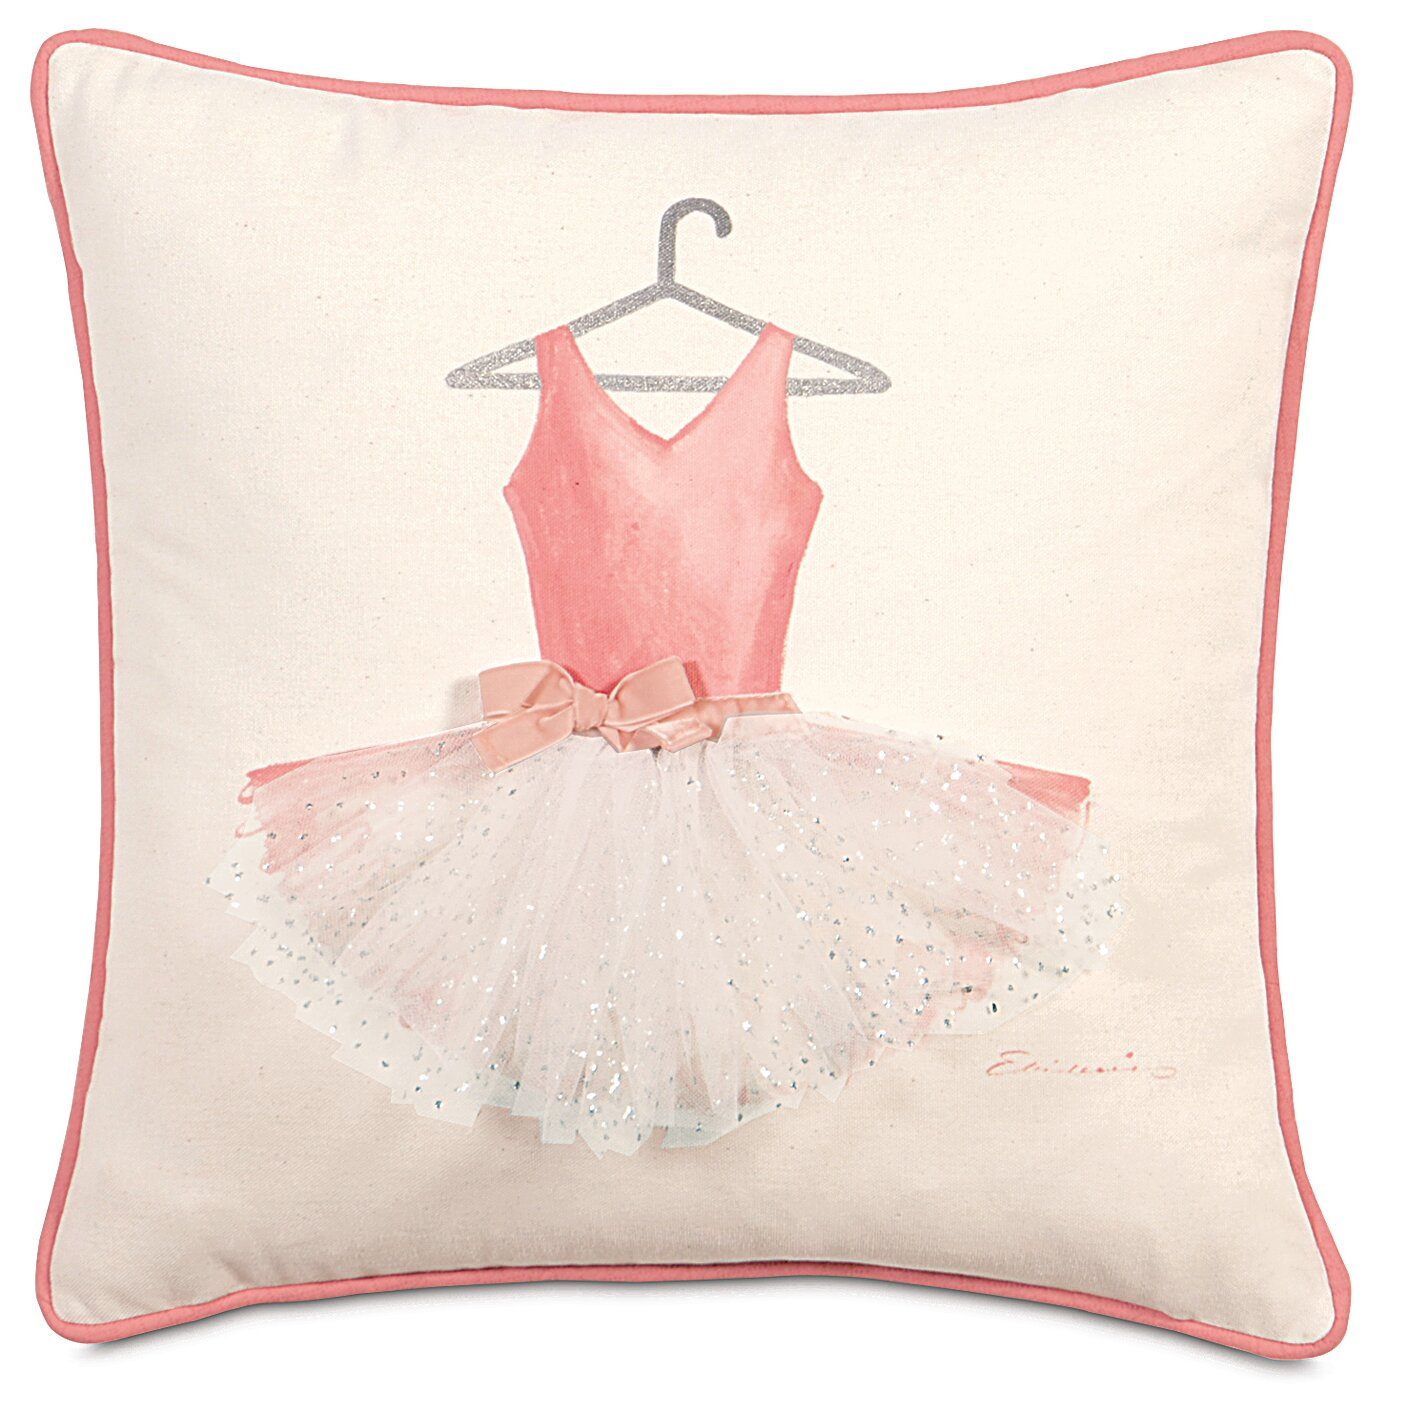 Decorative Pillow Wayfair : Eastern Accents Matilda Ballerina Attire Throw Pillow Wayfair